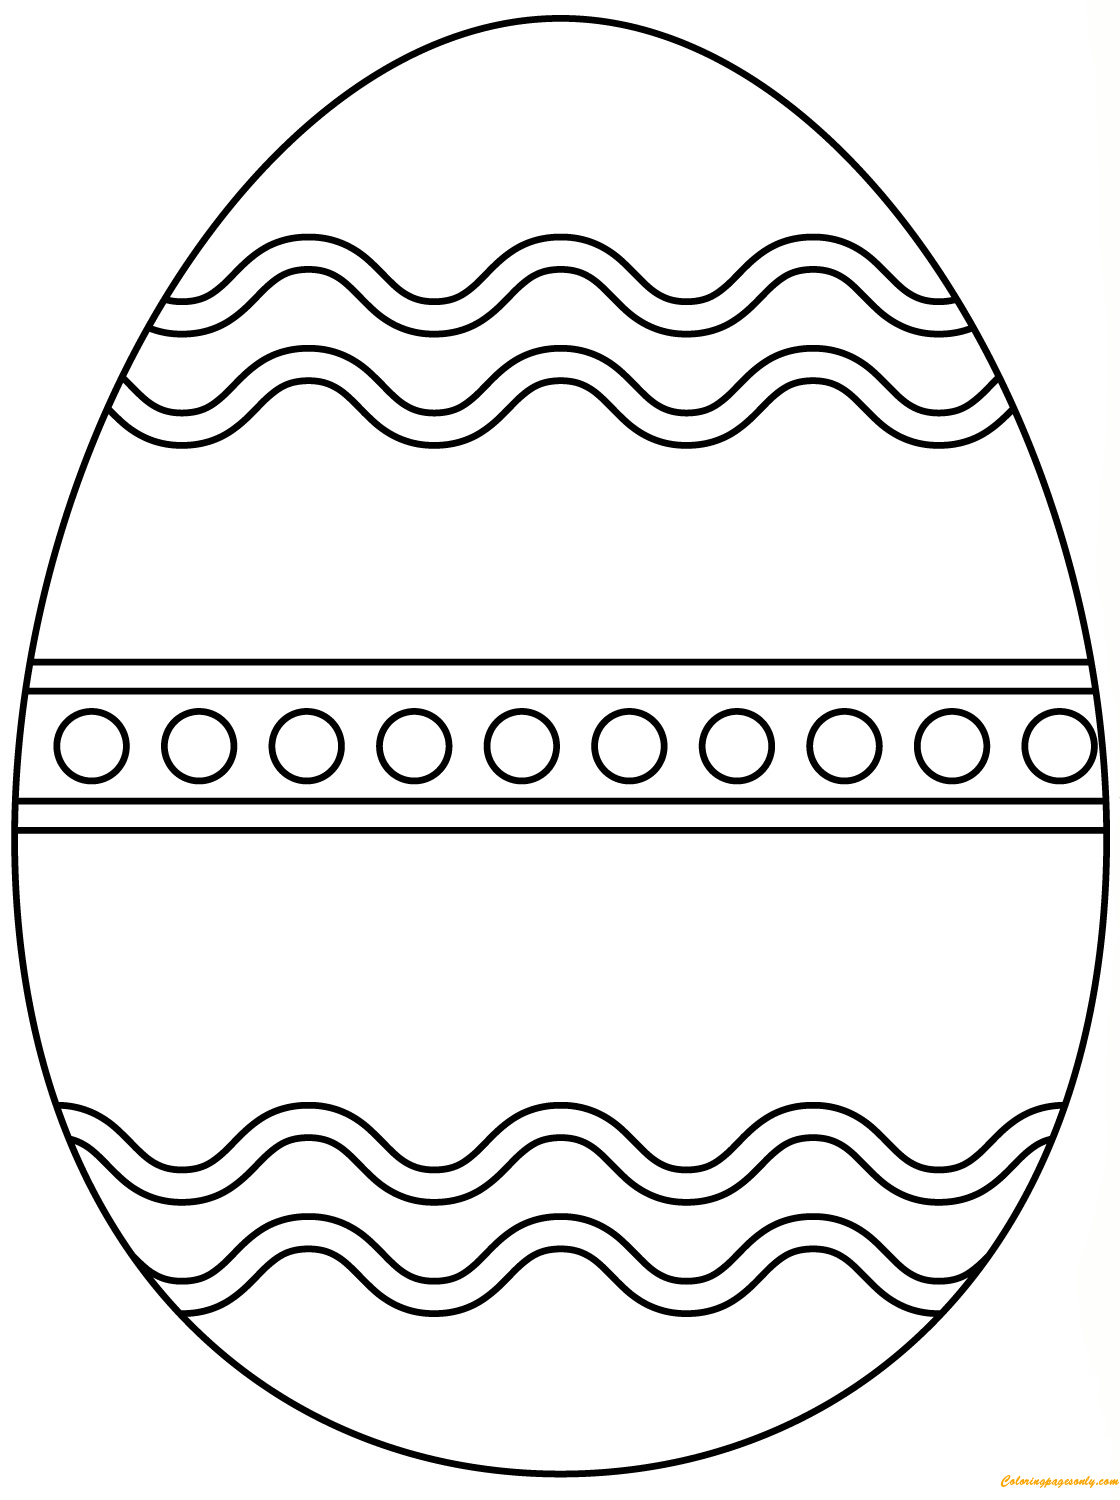 Plain Easter Egg Coloring Page Free Coloring Pages Online